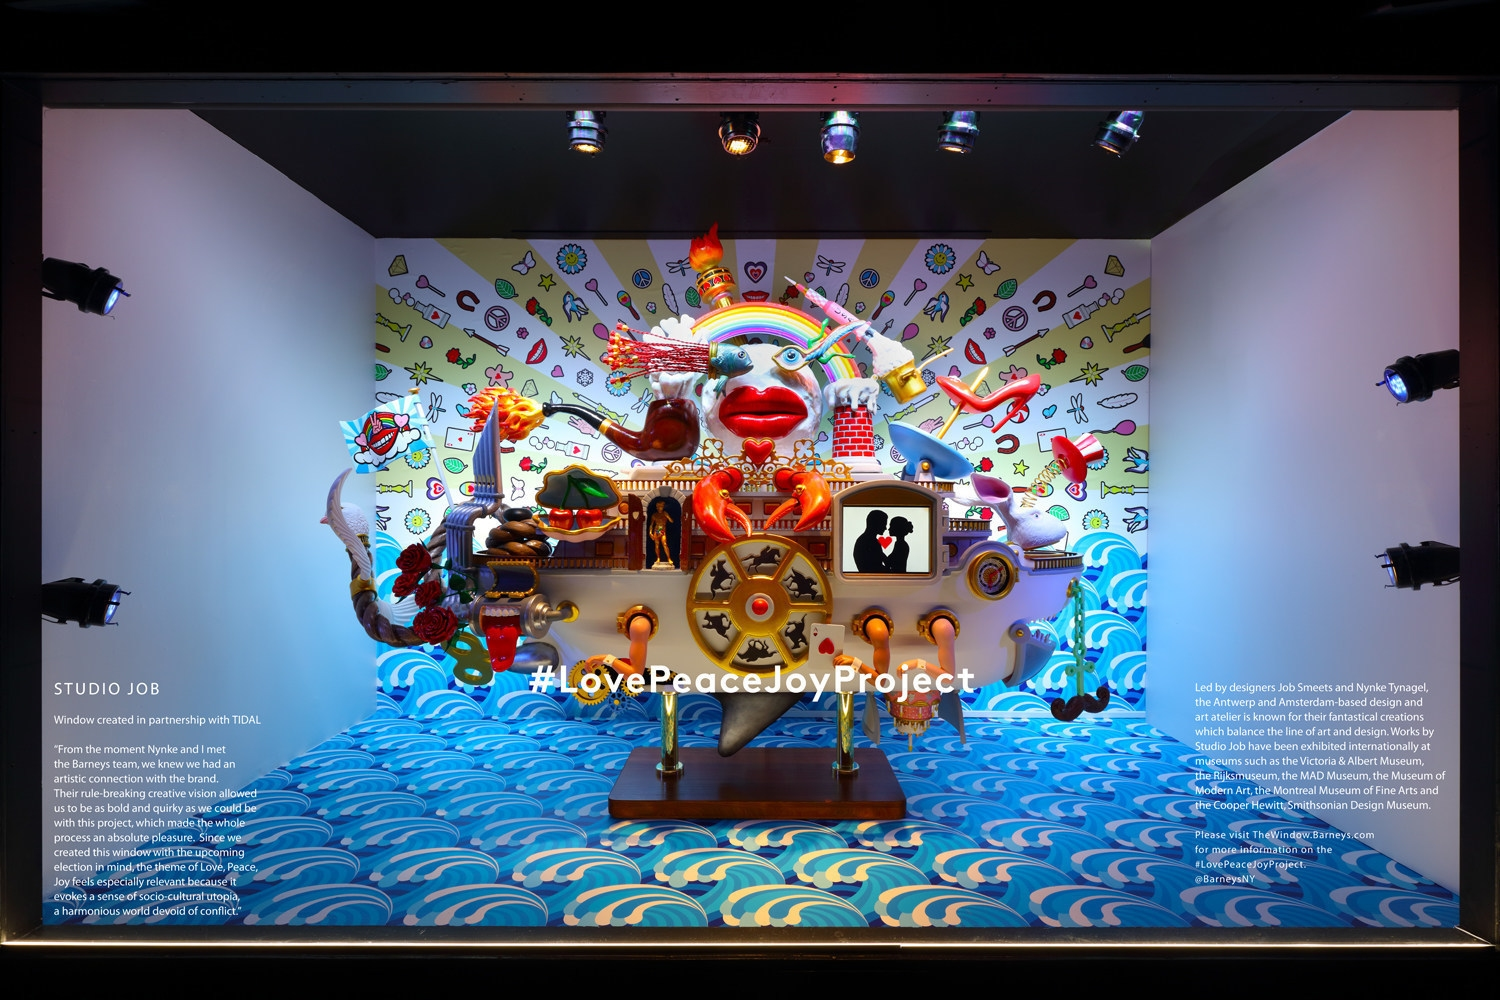 Barneys New York, the luxury specialty retailer, announces the launch of its 2016 holiday: Love Peace Joy Project, in association with many renowned designers. Barneys Barneys New York Madison Avenue Holiday Window Barneys New York Madison Avenue Holiday Window I Lobo you